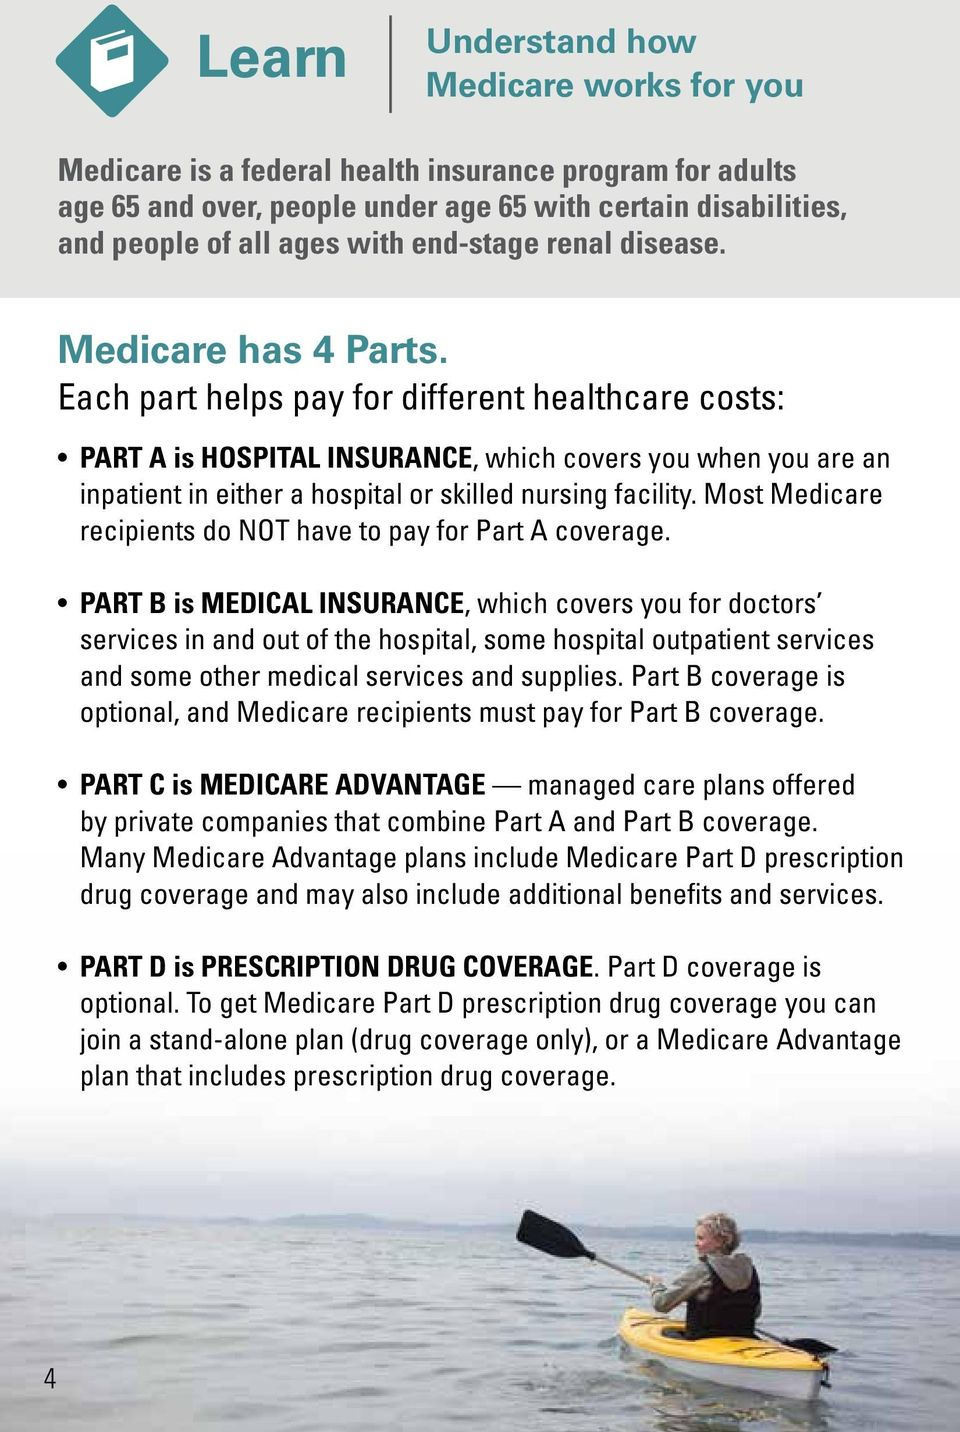 Each part helps pay for different healthcare costs: PART A is HOSPITAL INSURANCE, which covers you when you are an inpatient in either a hospital or skilled nursing facility.